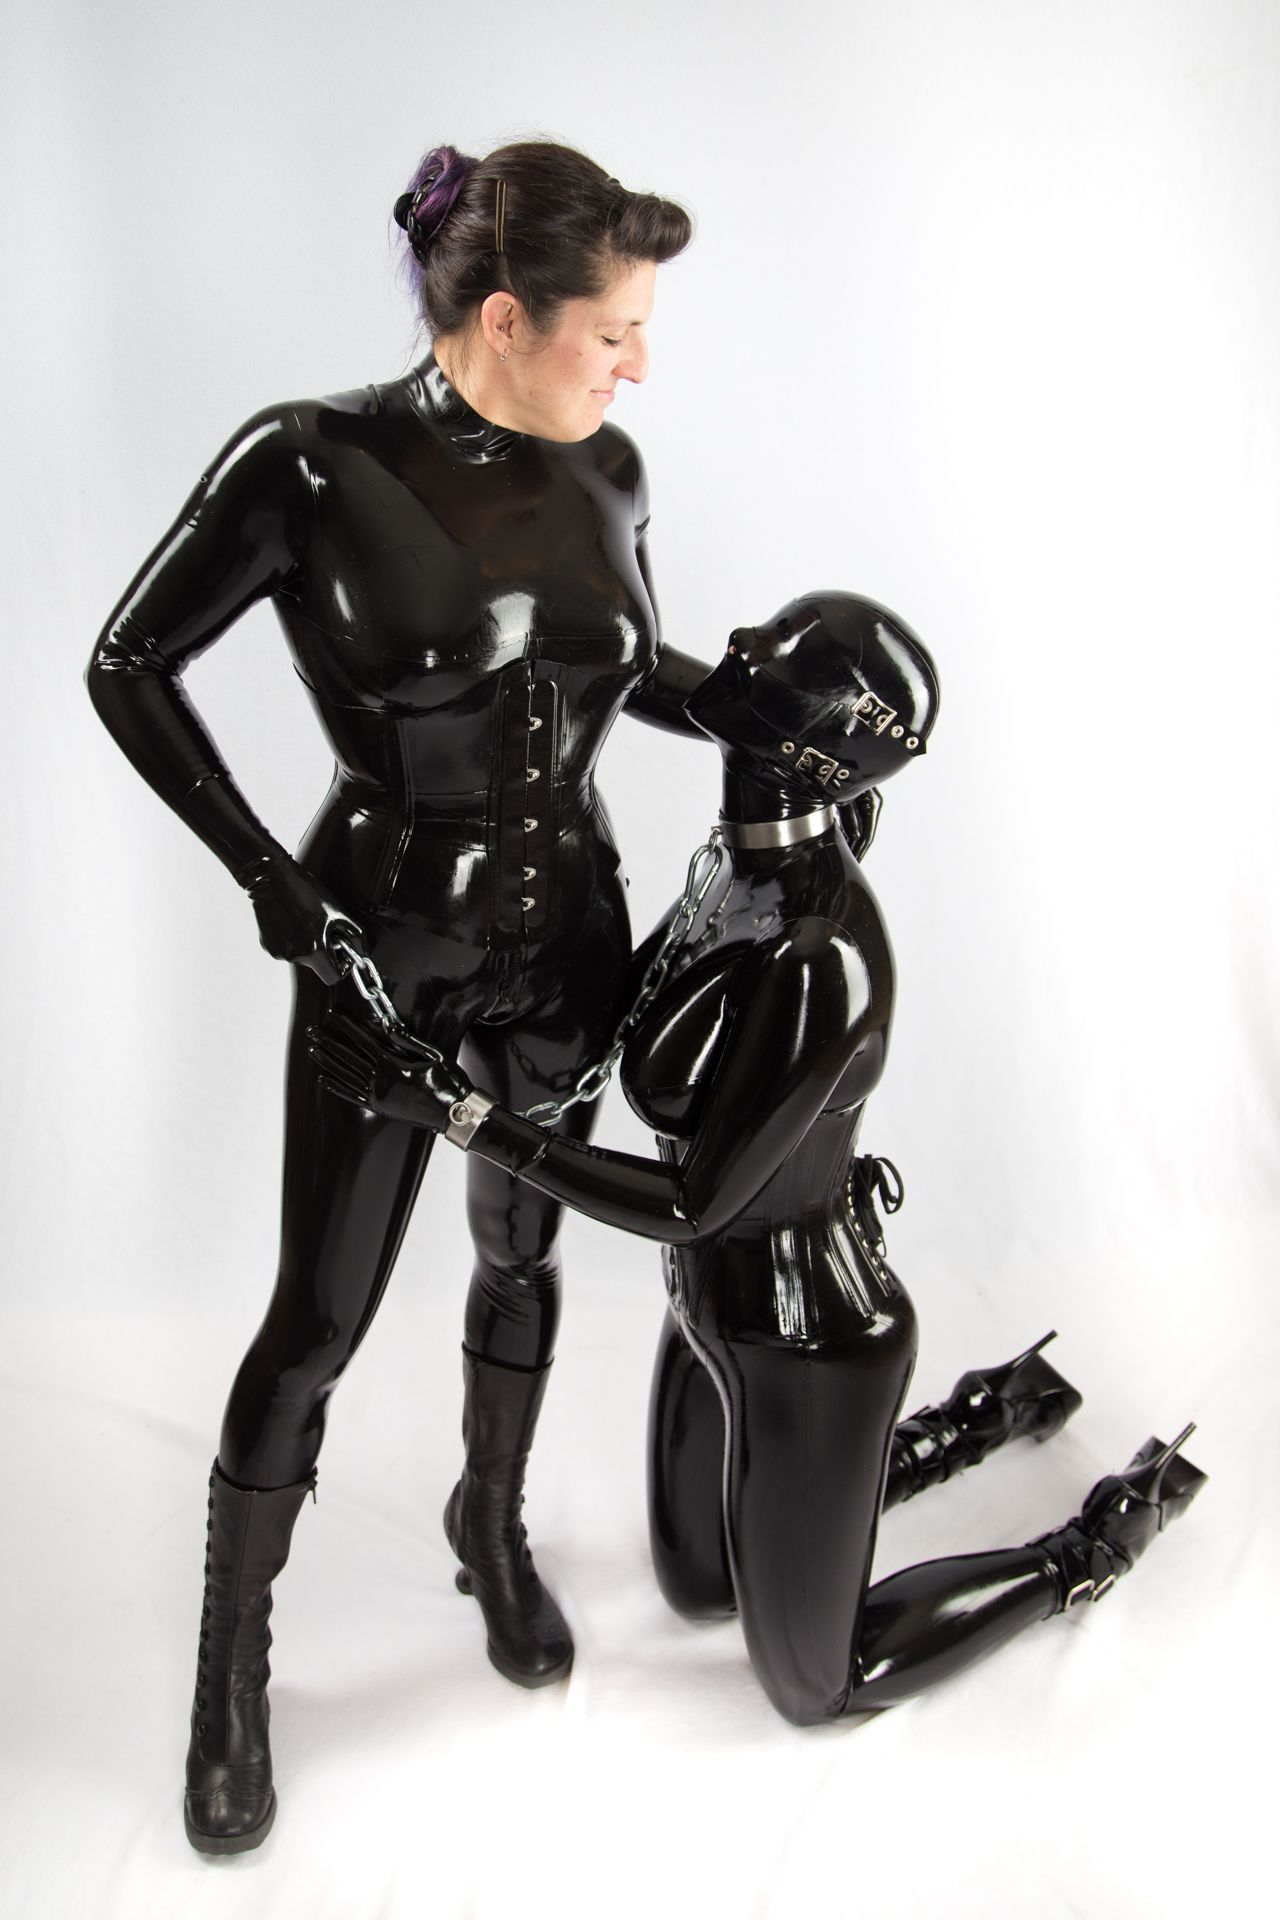 Ray porn lesbian rubber domination naked